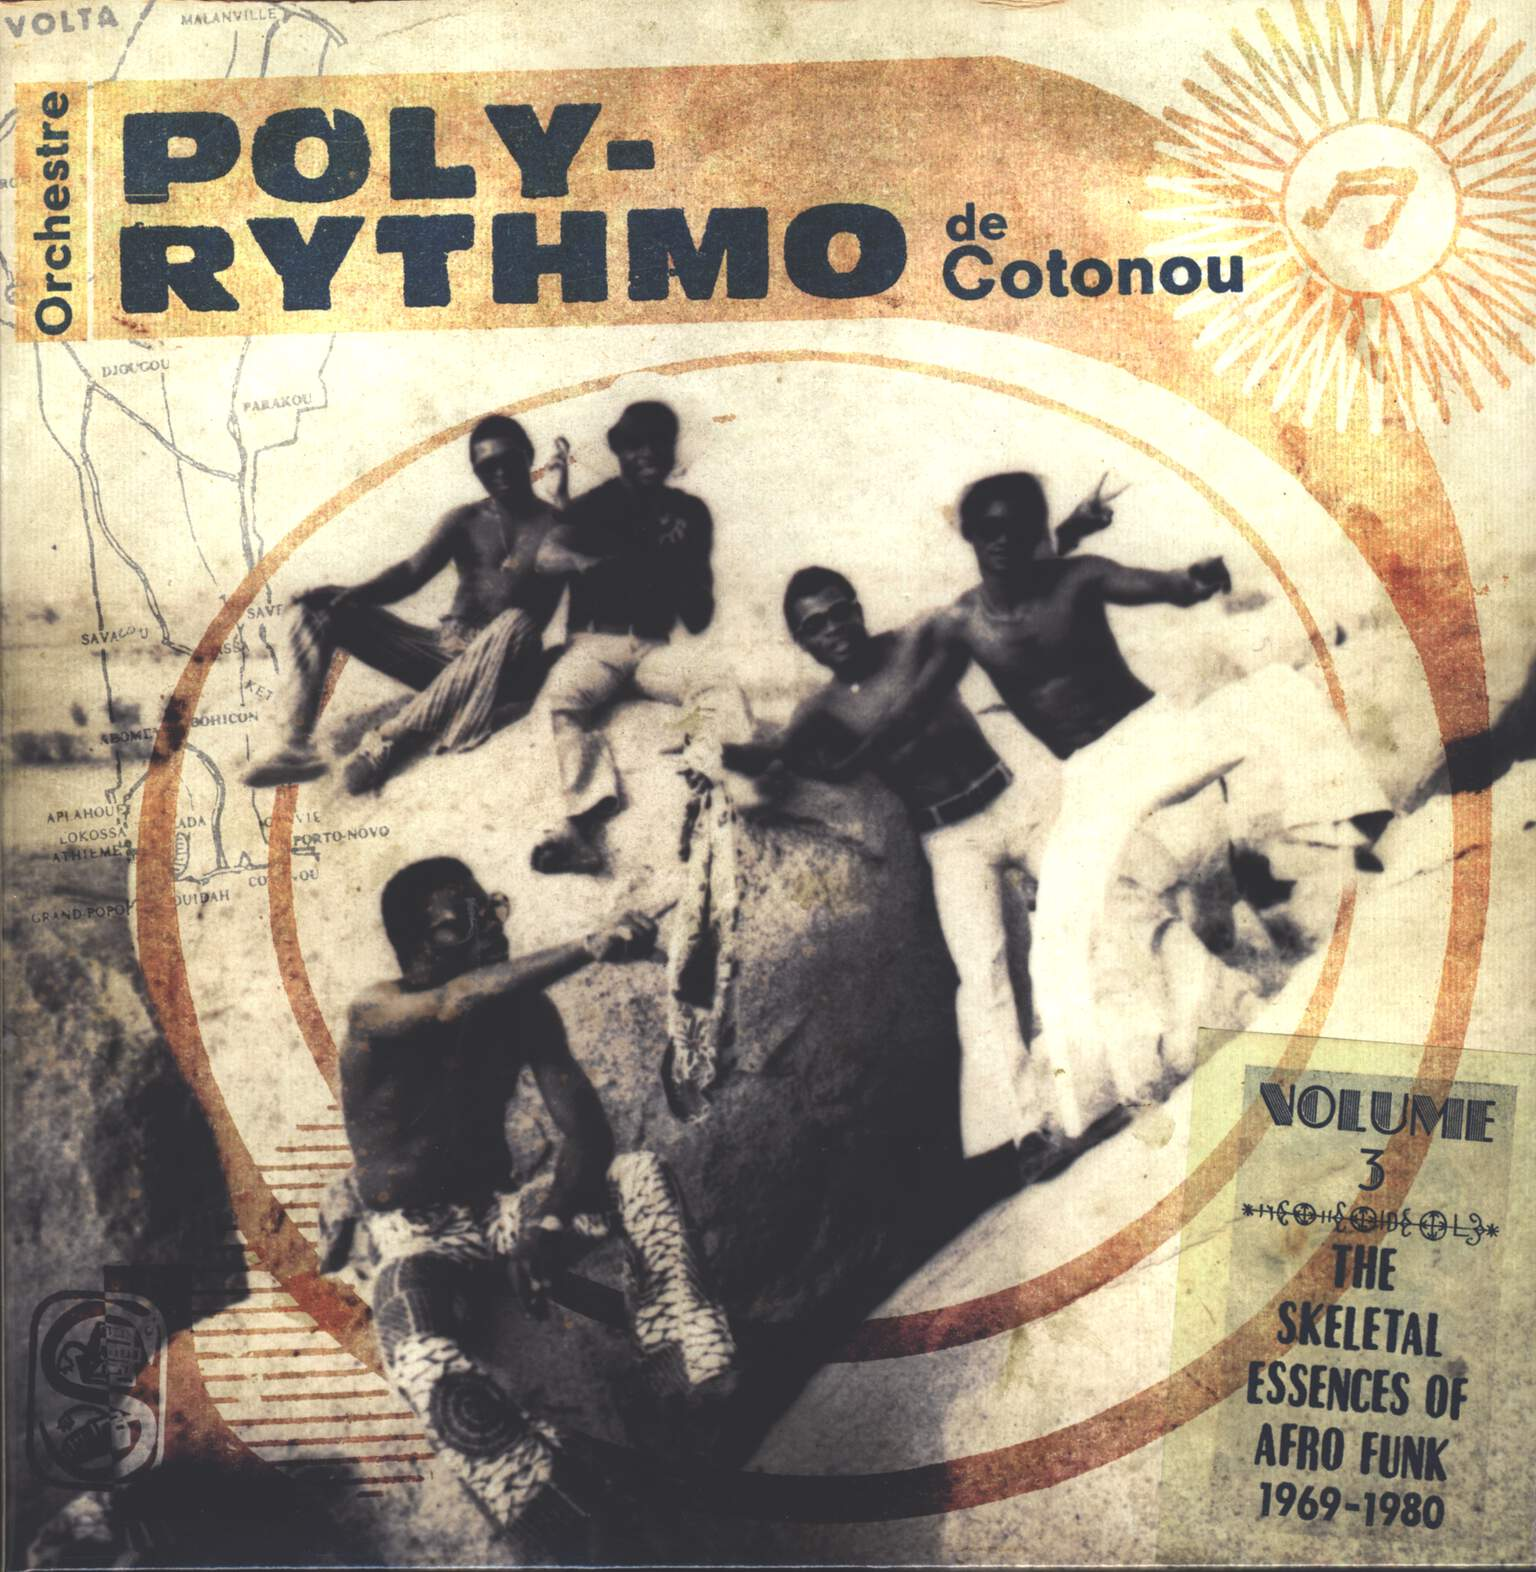 T.P. Orchestre Poly-Rythmo: The Skeletal Essences Of Afro Funk 1969-1980, LP (Vinyl)